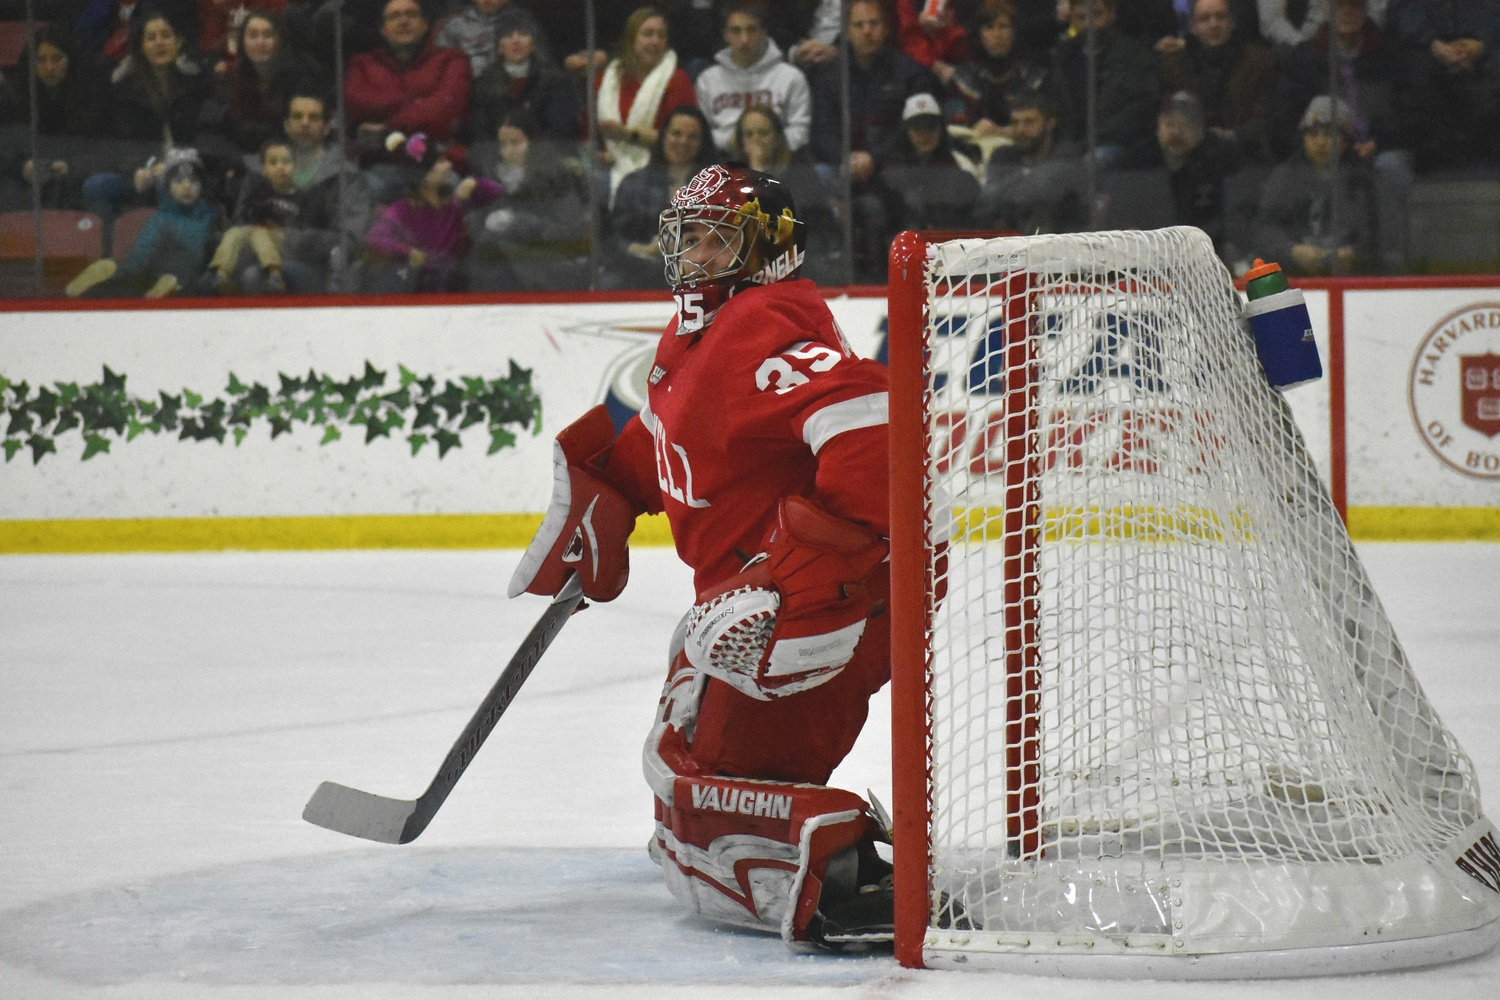 In last season's clash at Bright-Landry, Big Red goalie Matt Galajda, then a rookie, turned away 35 shots to shut out the Crimson.